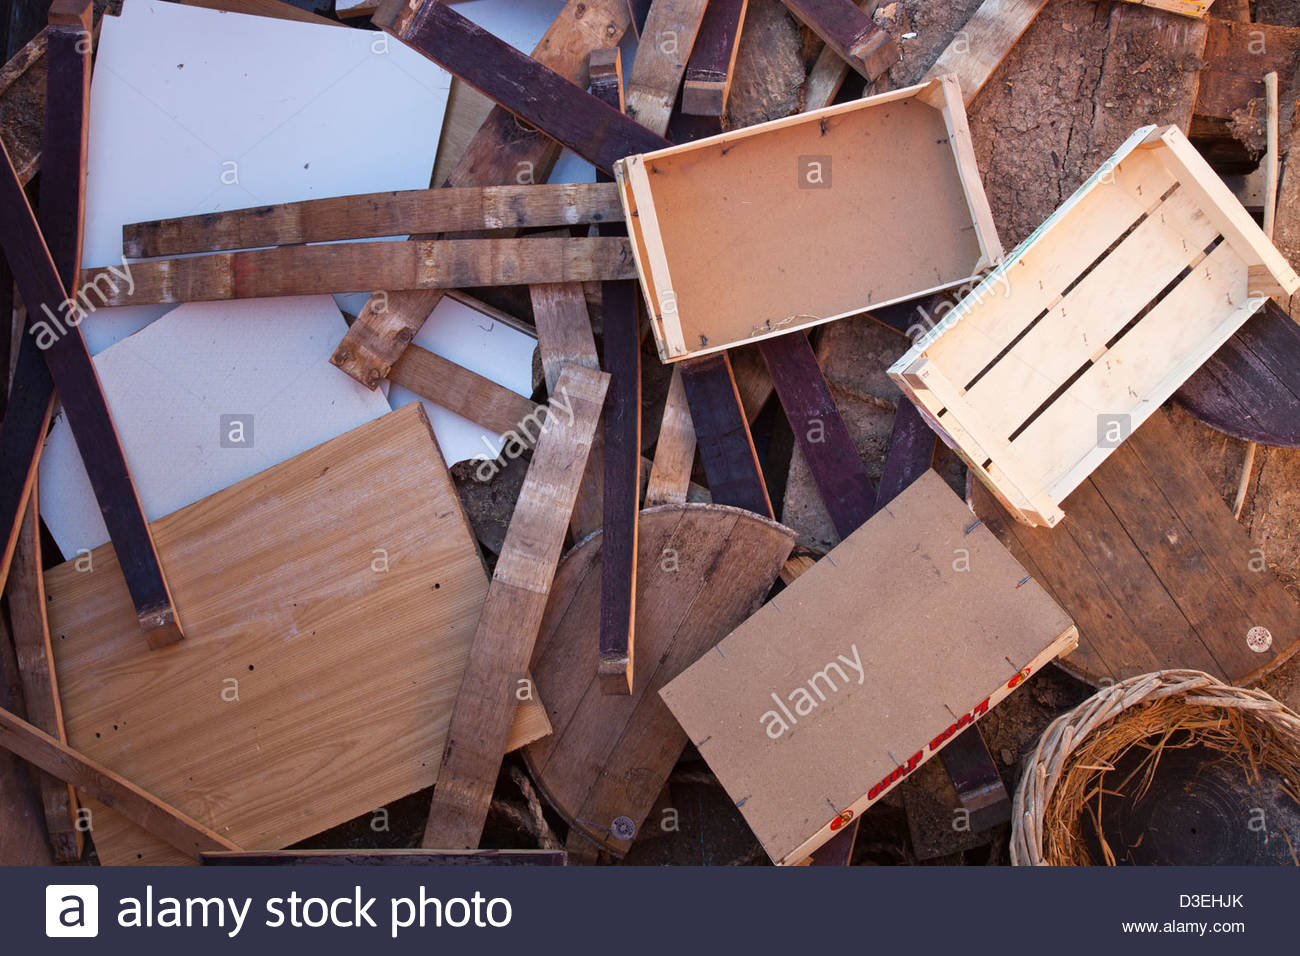 wood,separate collection of trash,landfill - Stock Image